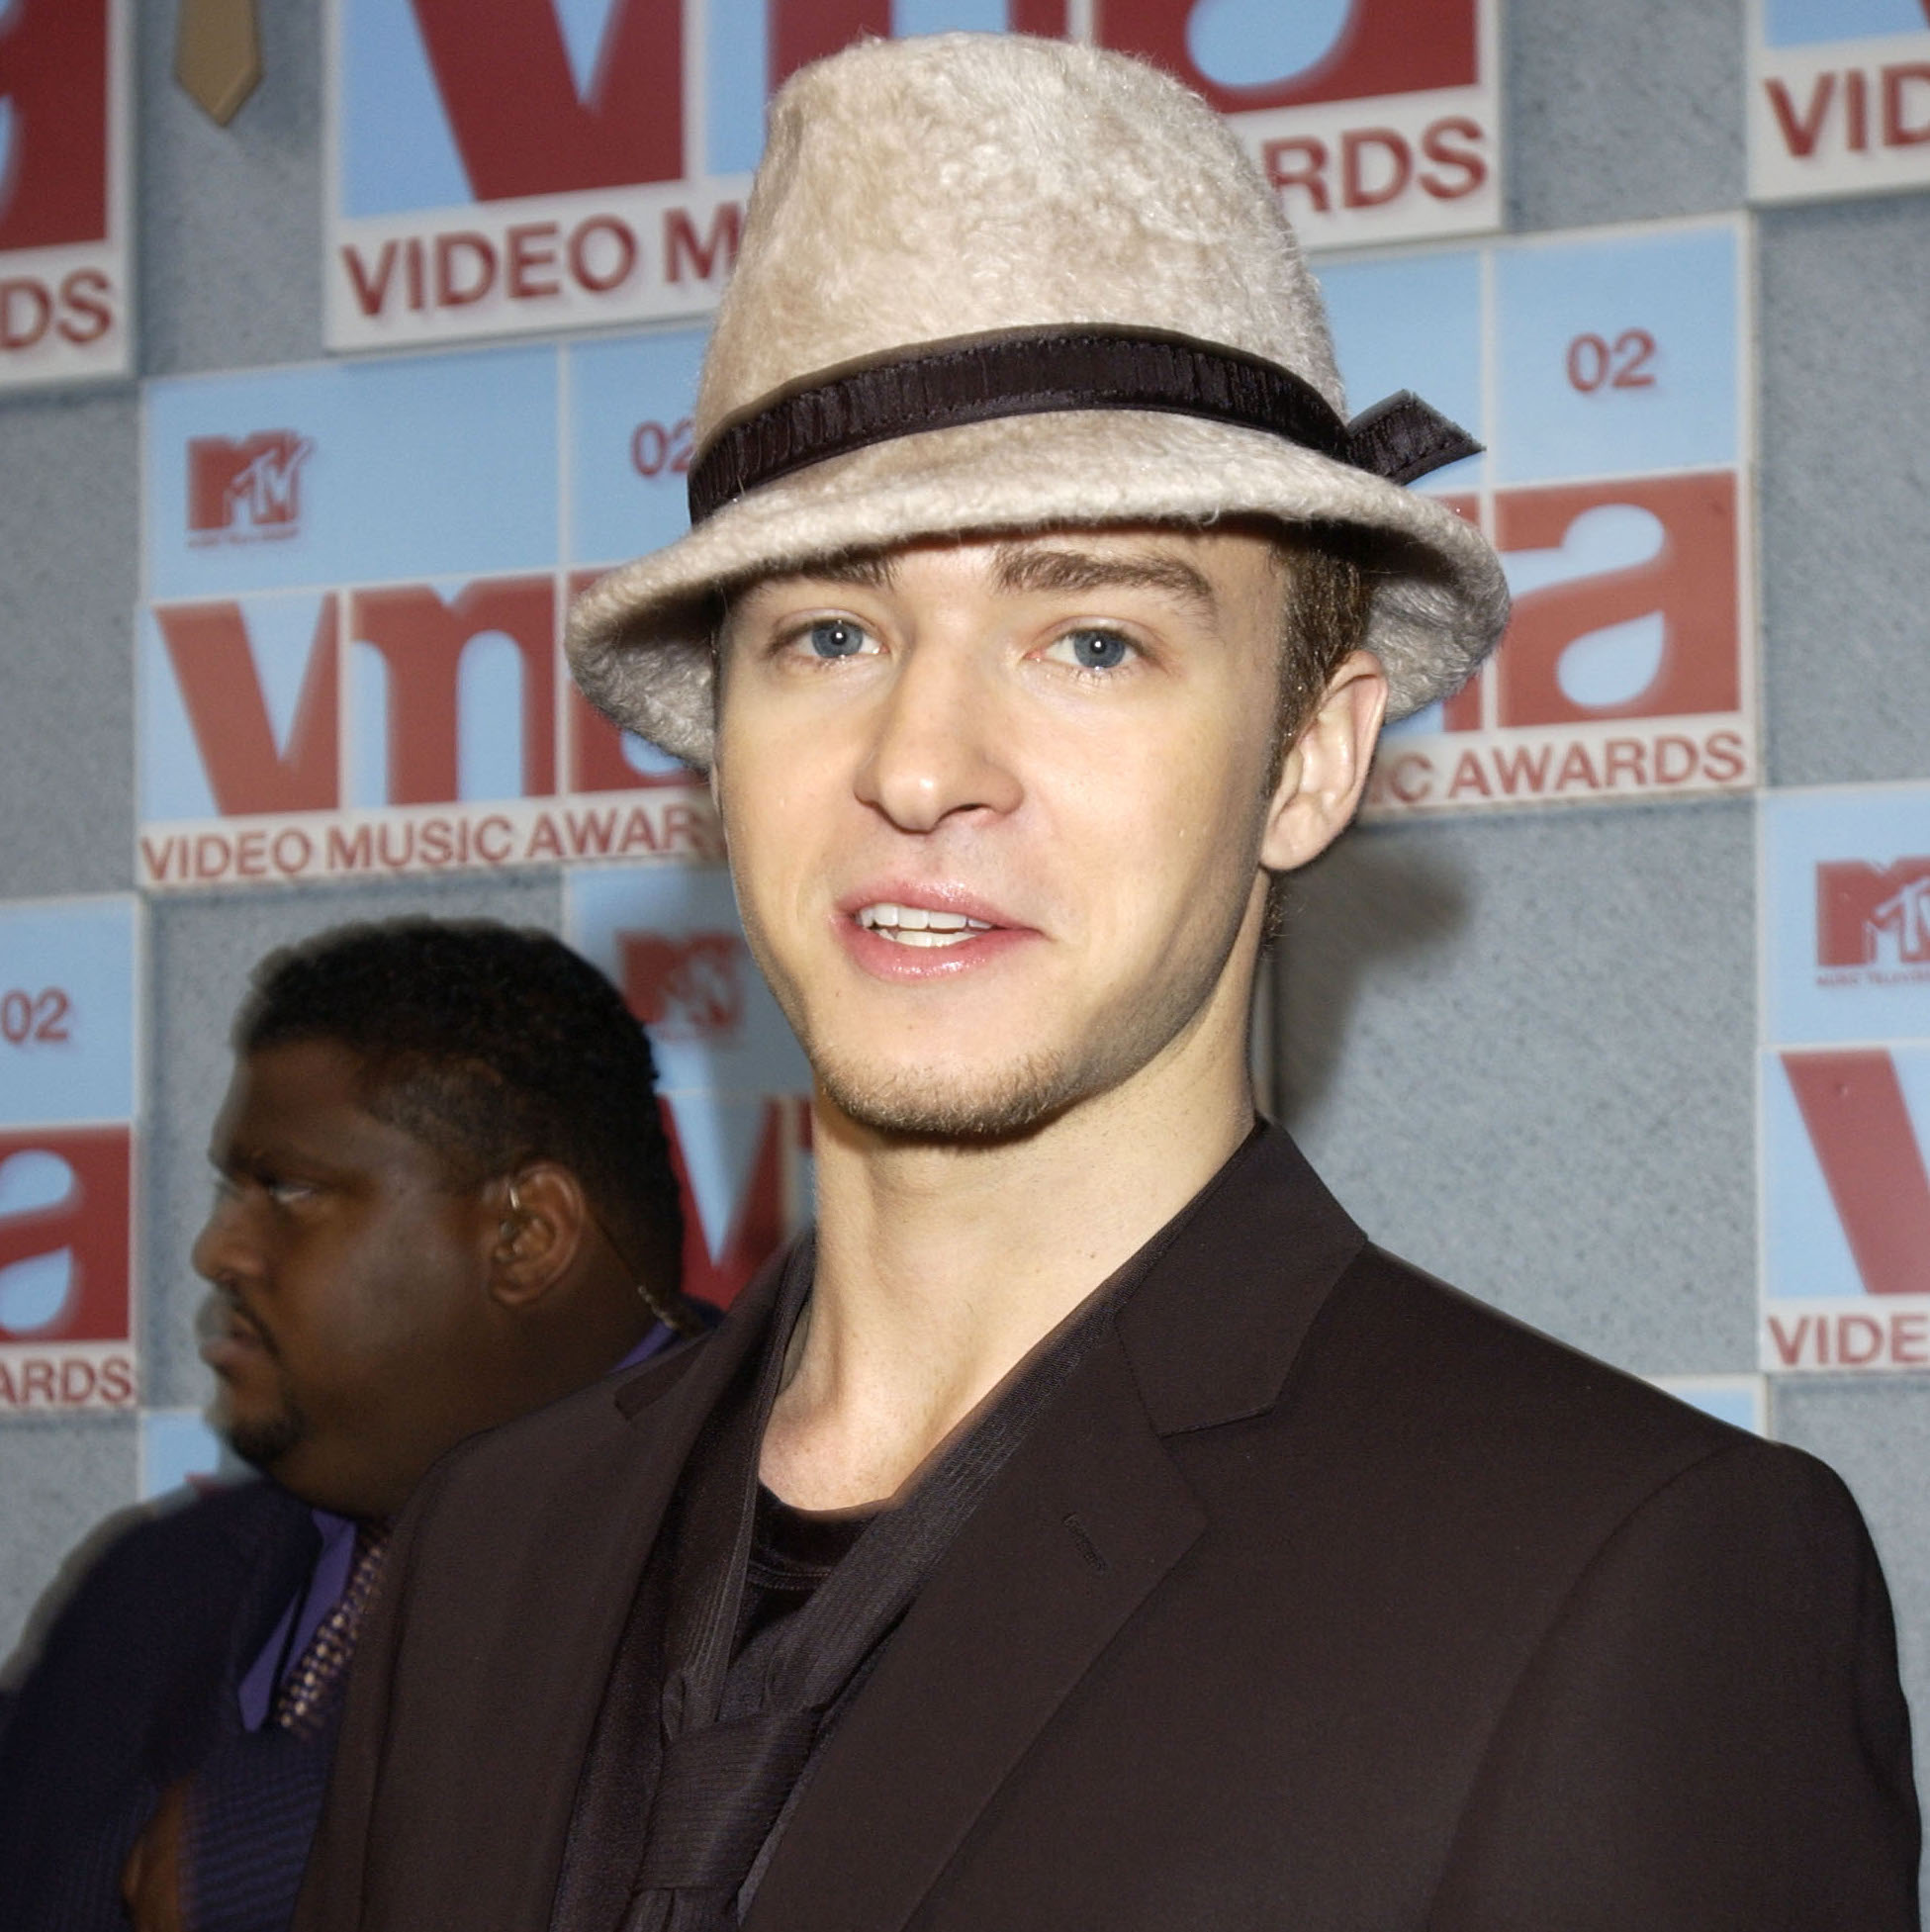 Celebrity Fedora Hats  2000s Fashion That Was Legit Heinous f018c26a218